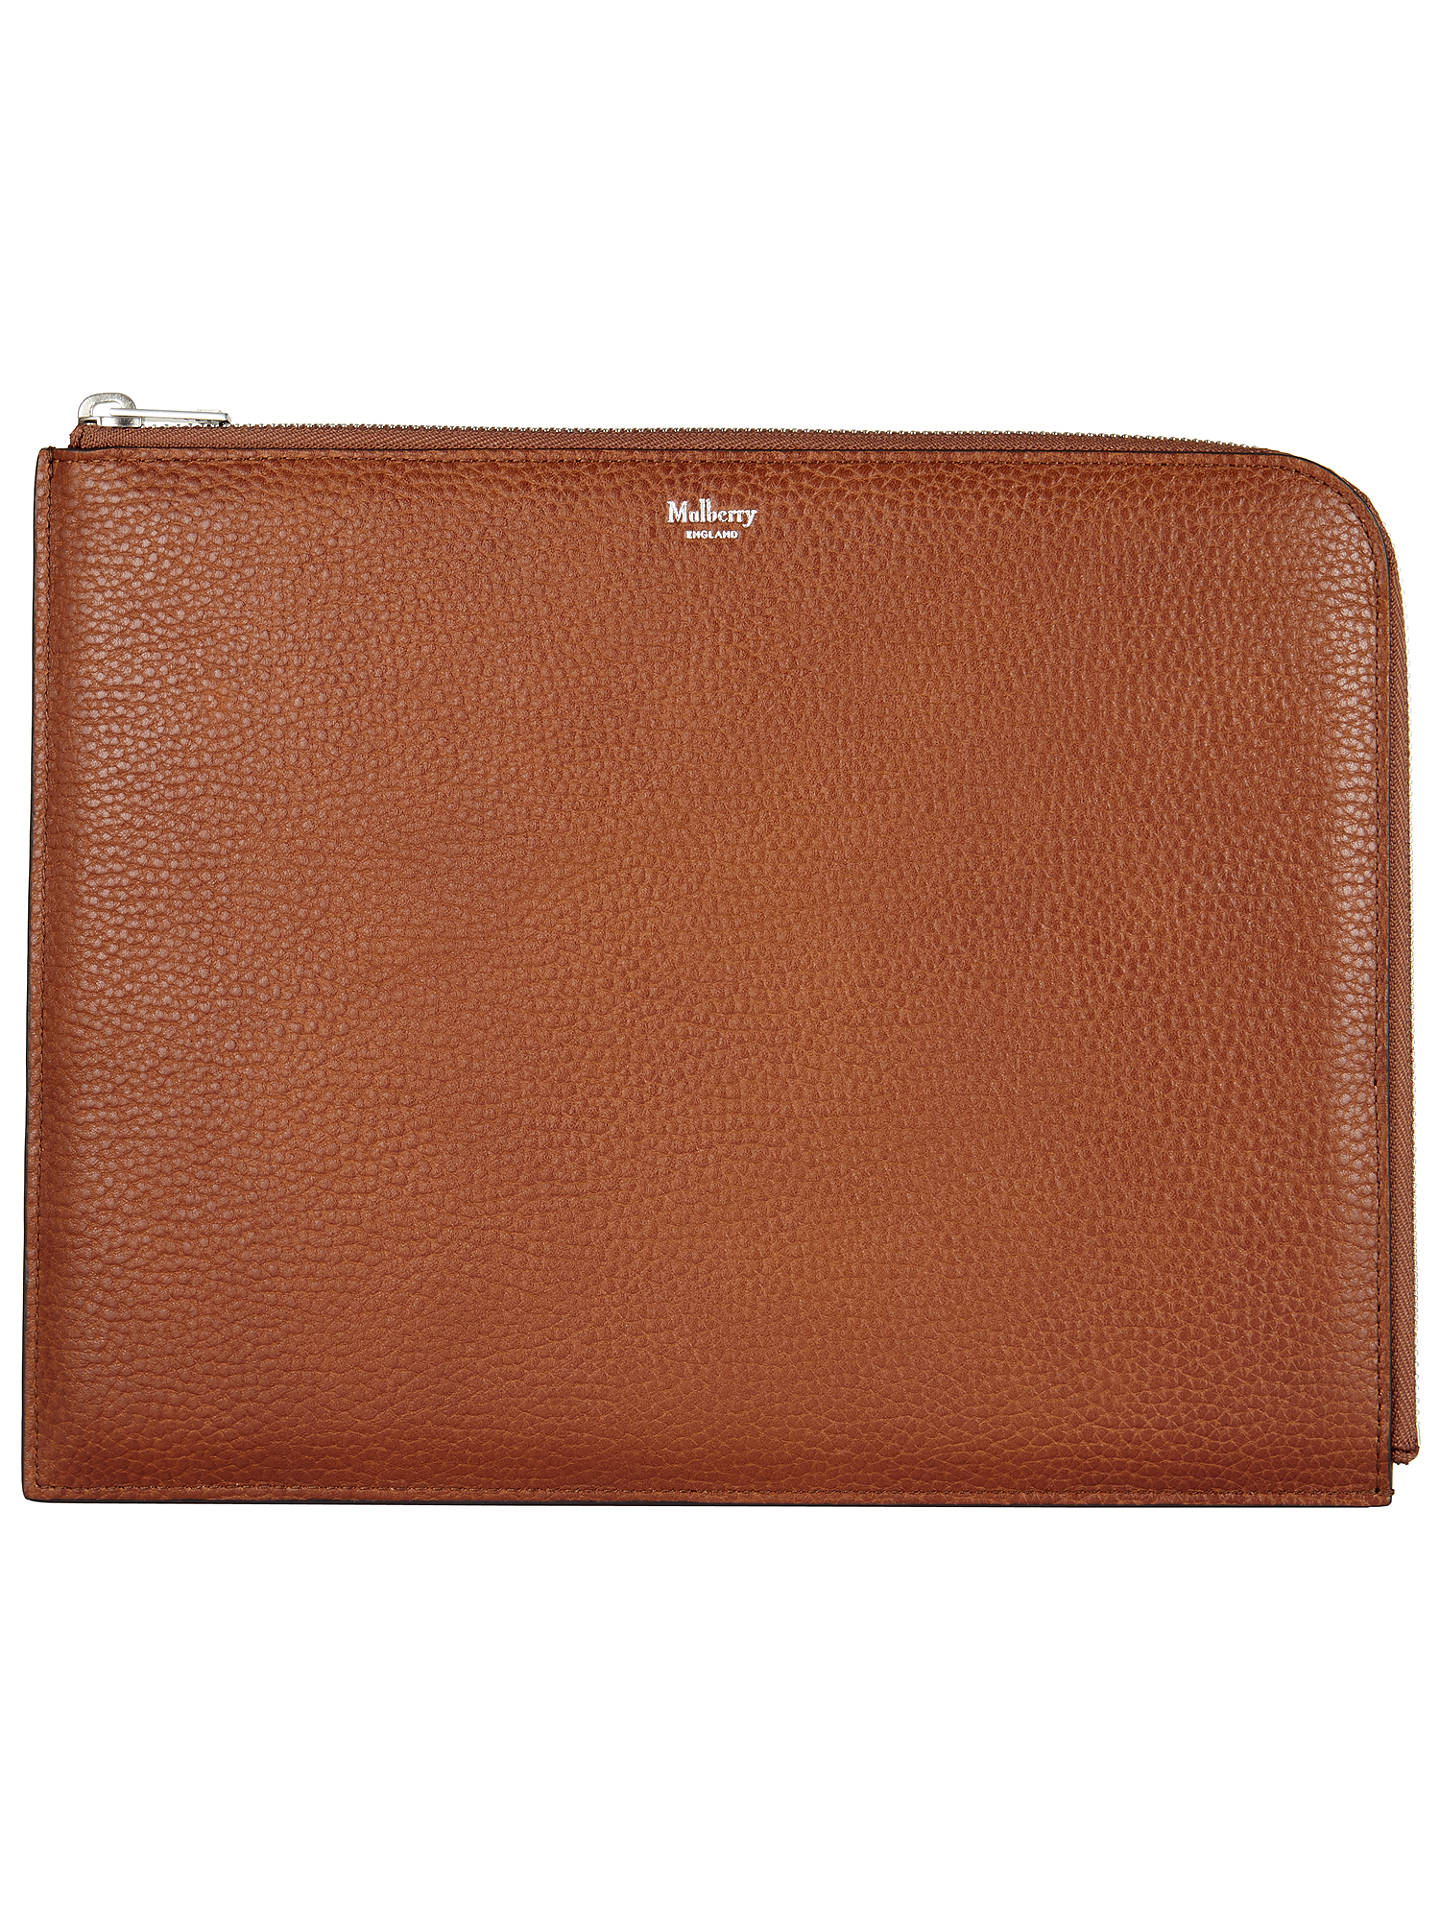 a412f018ed Buy Mulberry Leather Tech Pouch, Oak Online at johnlewis.com ...